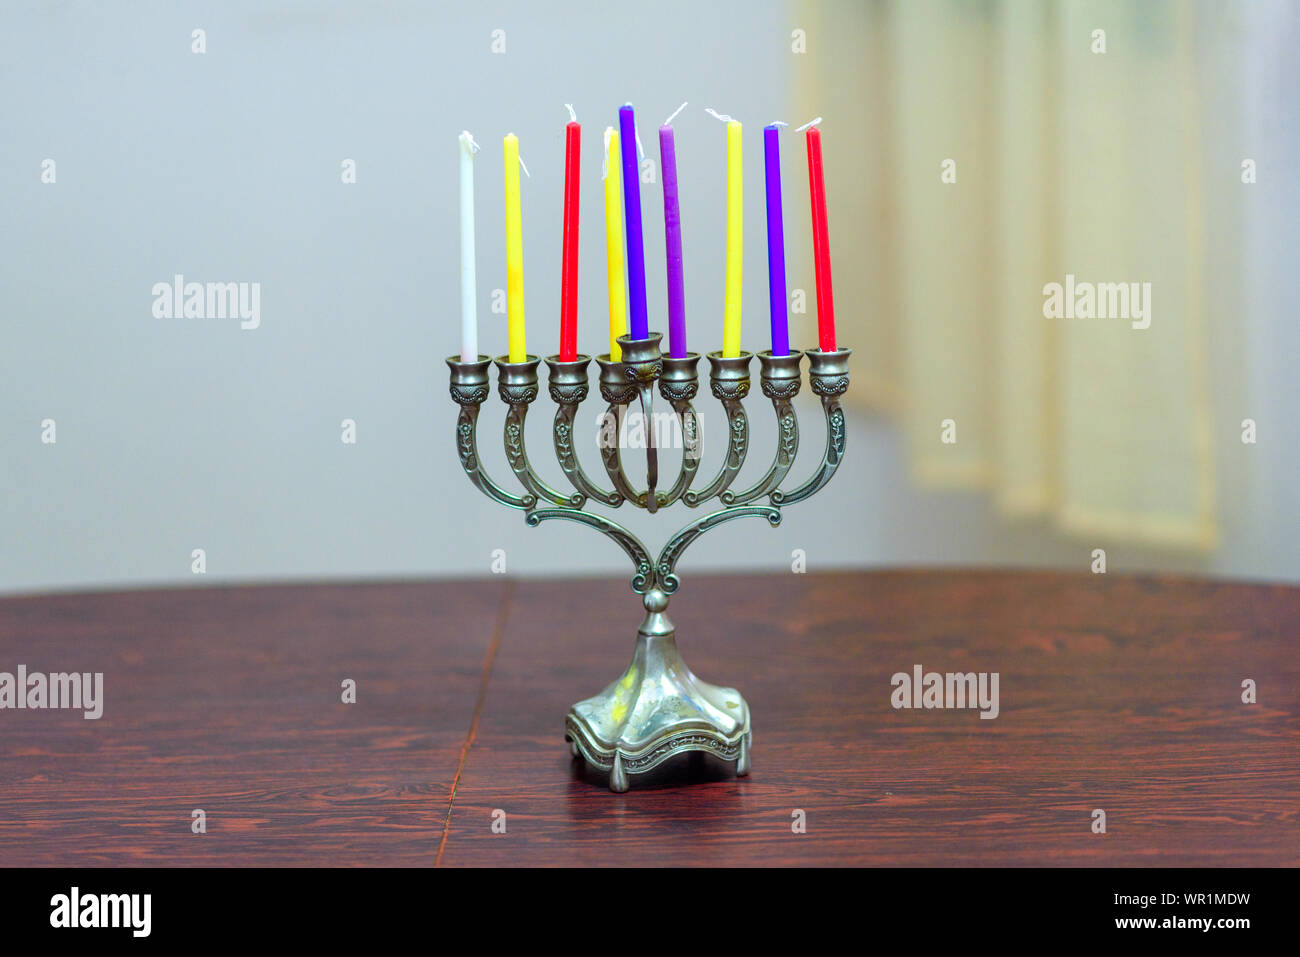 Jewish holiday Hanukkah background with menorah and colorful candles on wooden table in home. Cozy image menorah ready for lighting. Stock Photo